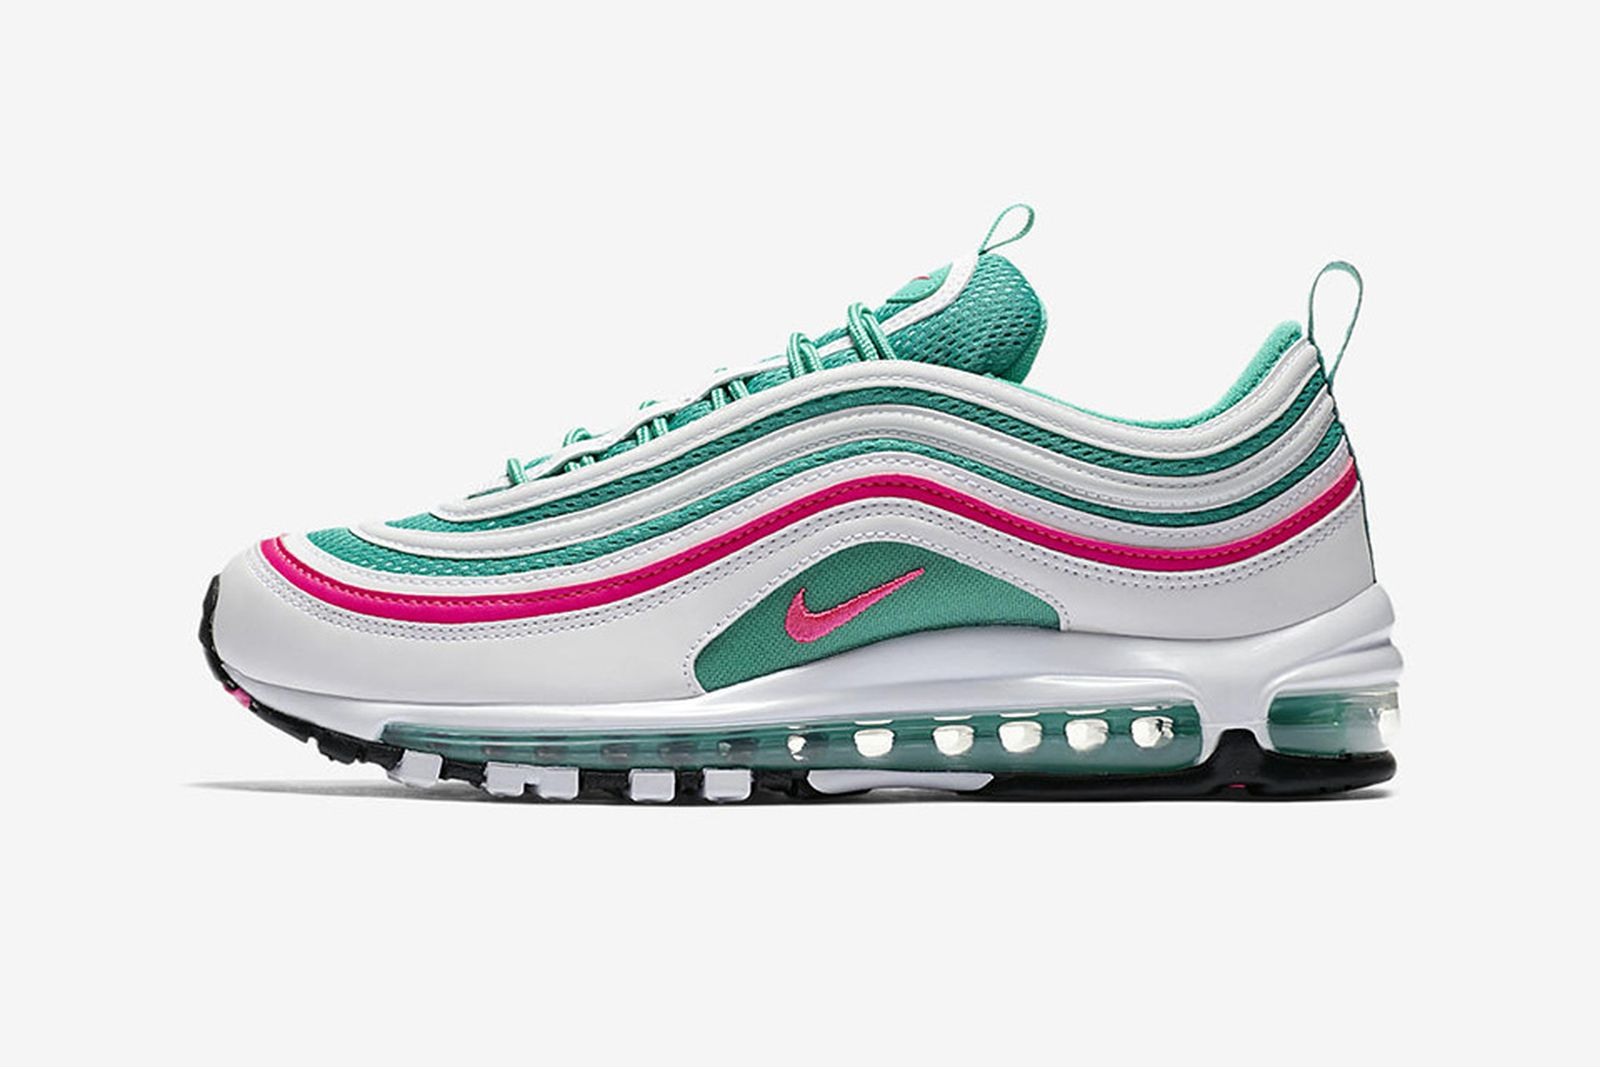 nike-air-max-miami-vibes-release-price-01